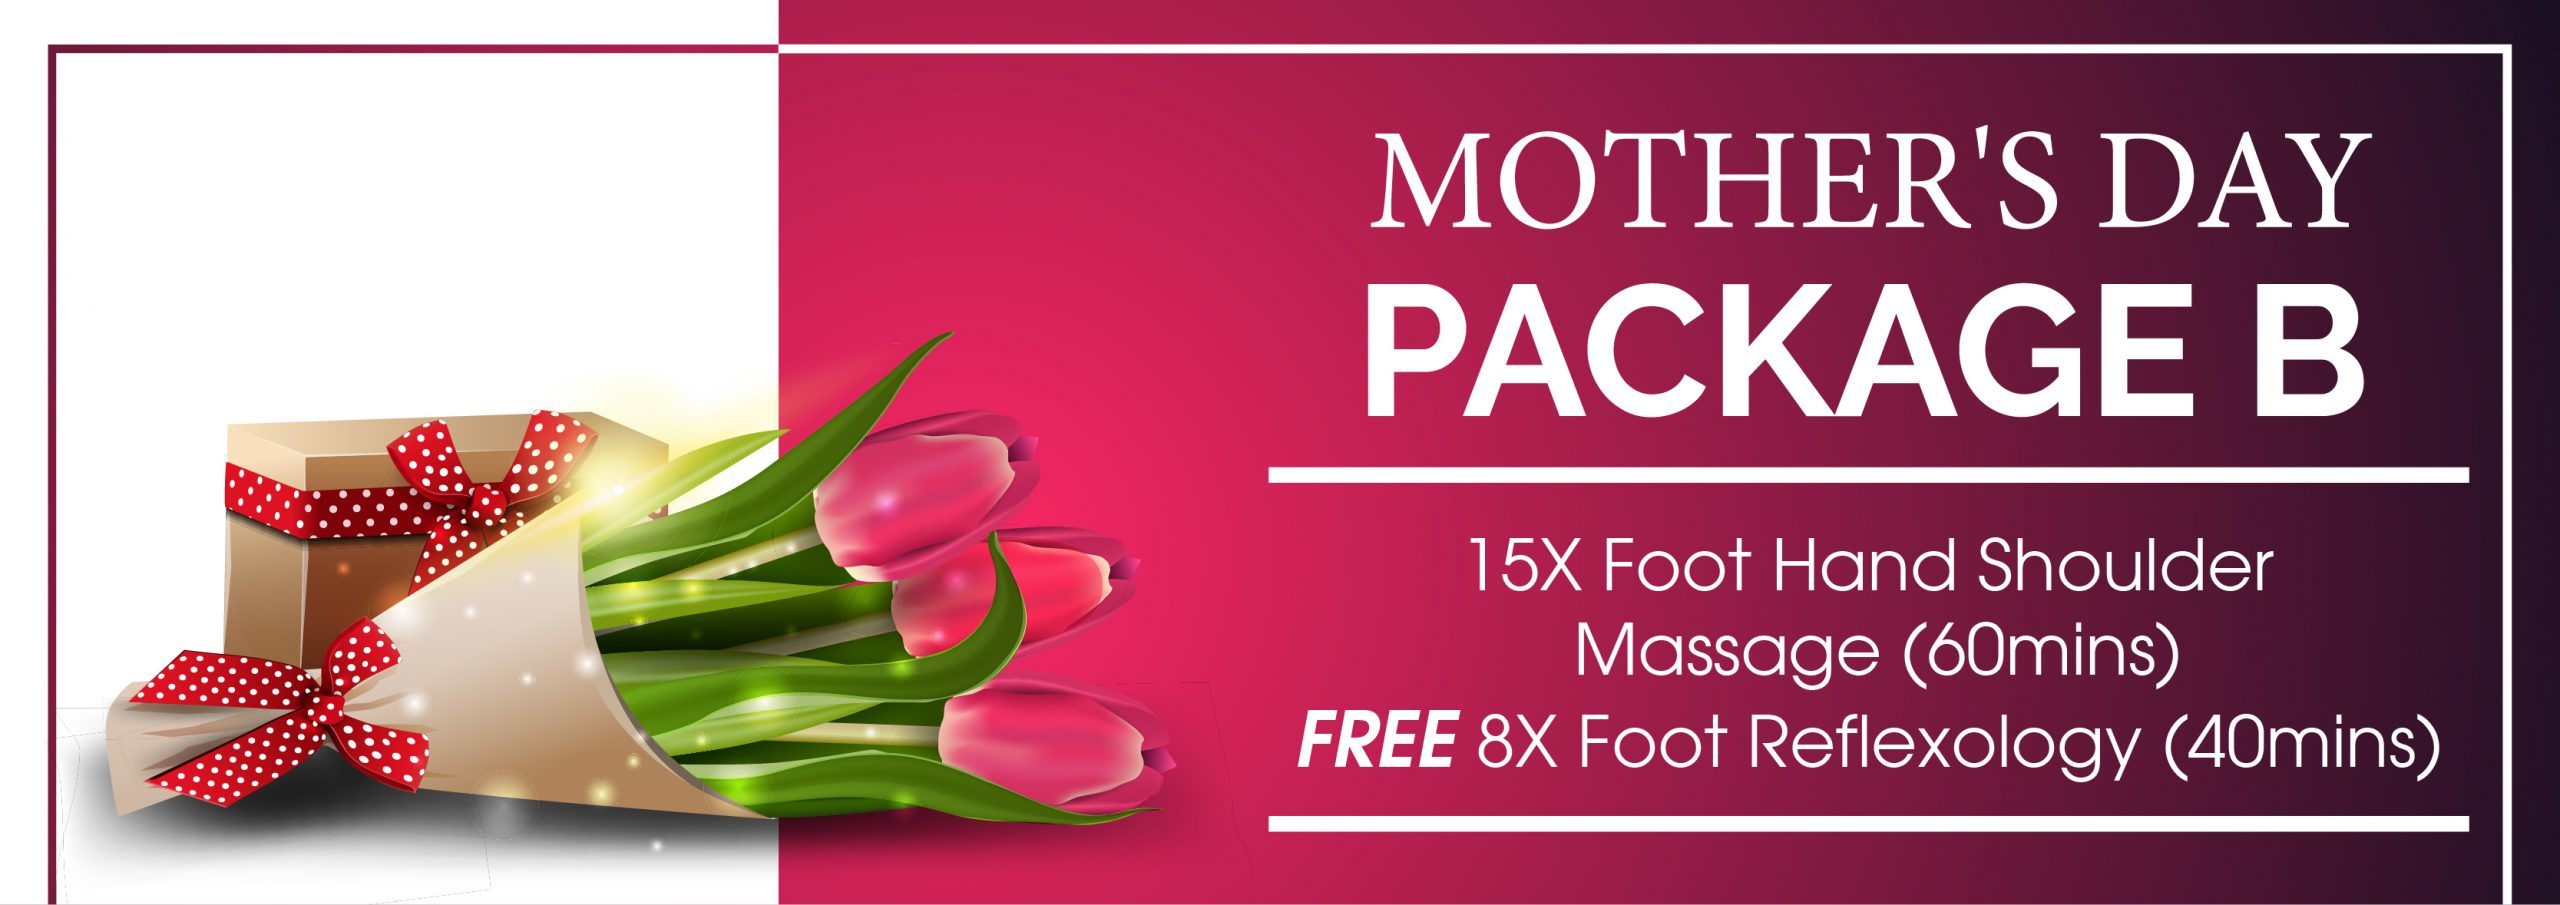 Mother's Day Package B